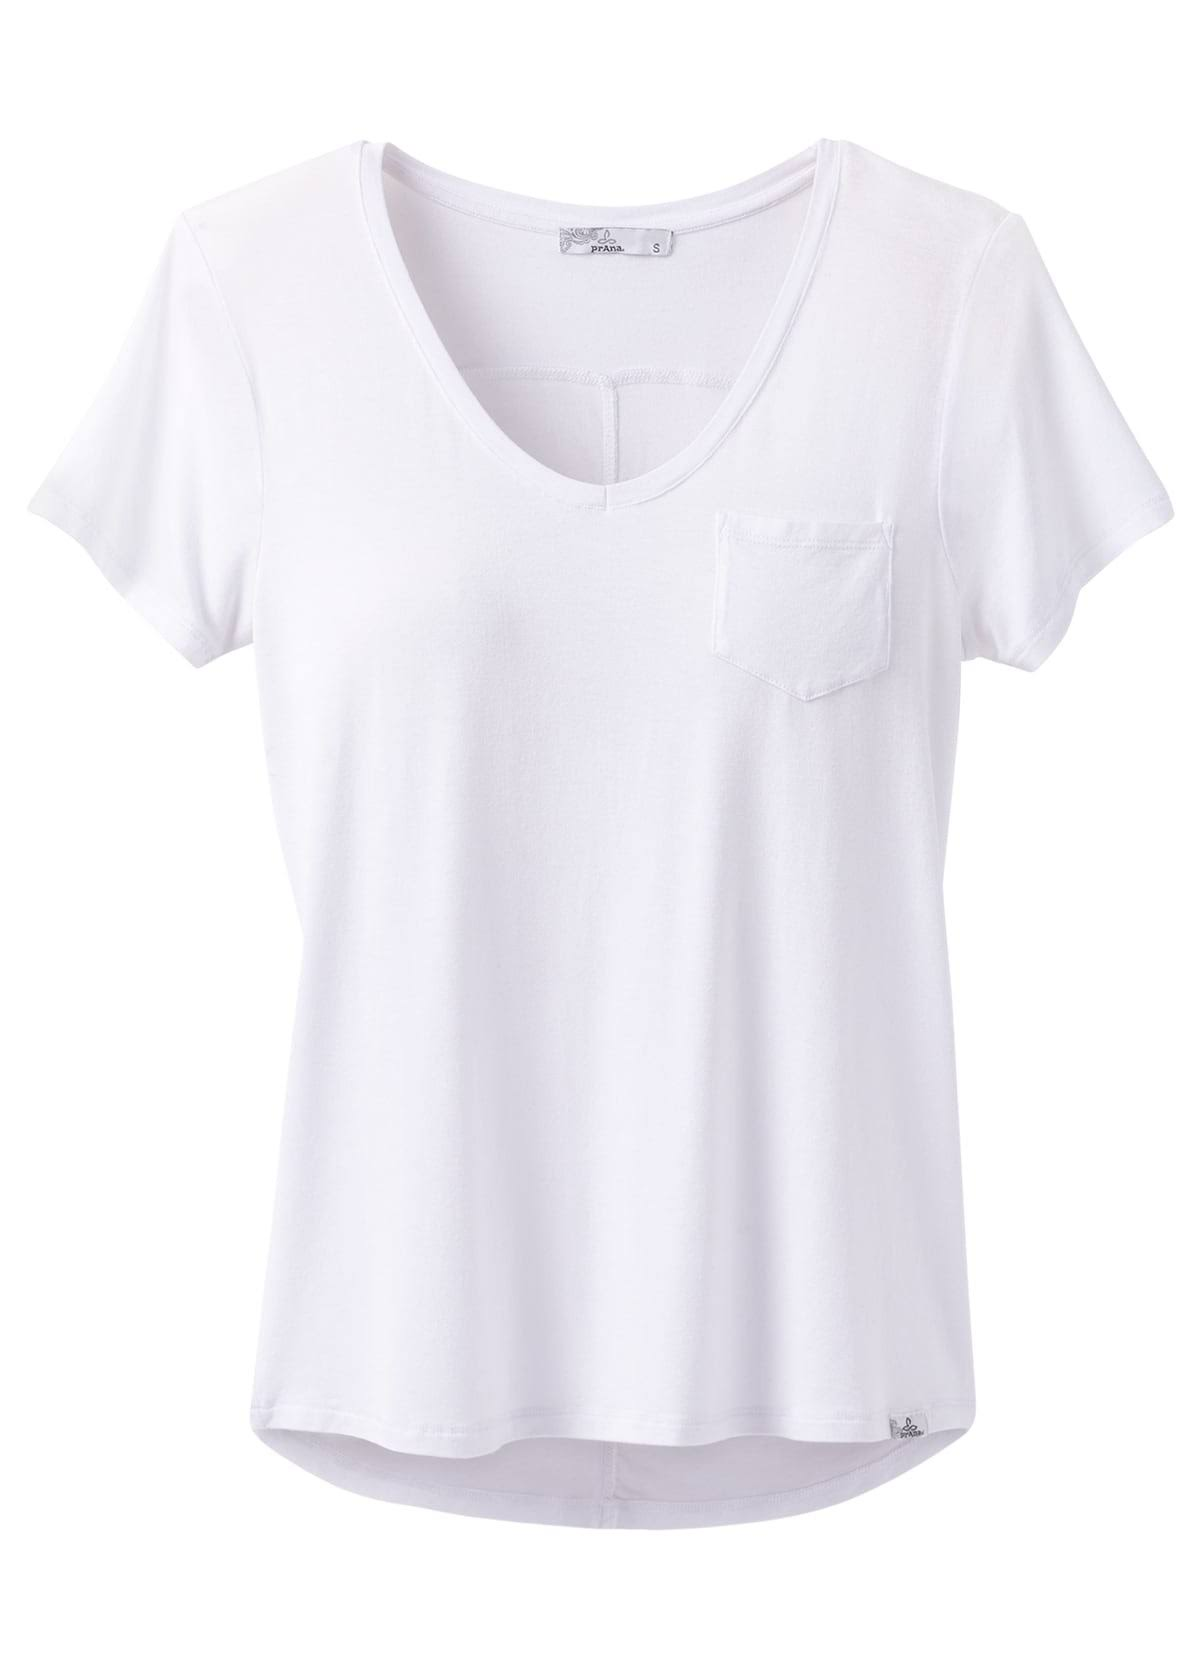 prAna Women's White Foundation Short Sleeve V Neck Top